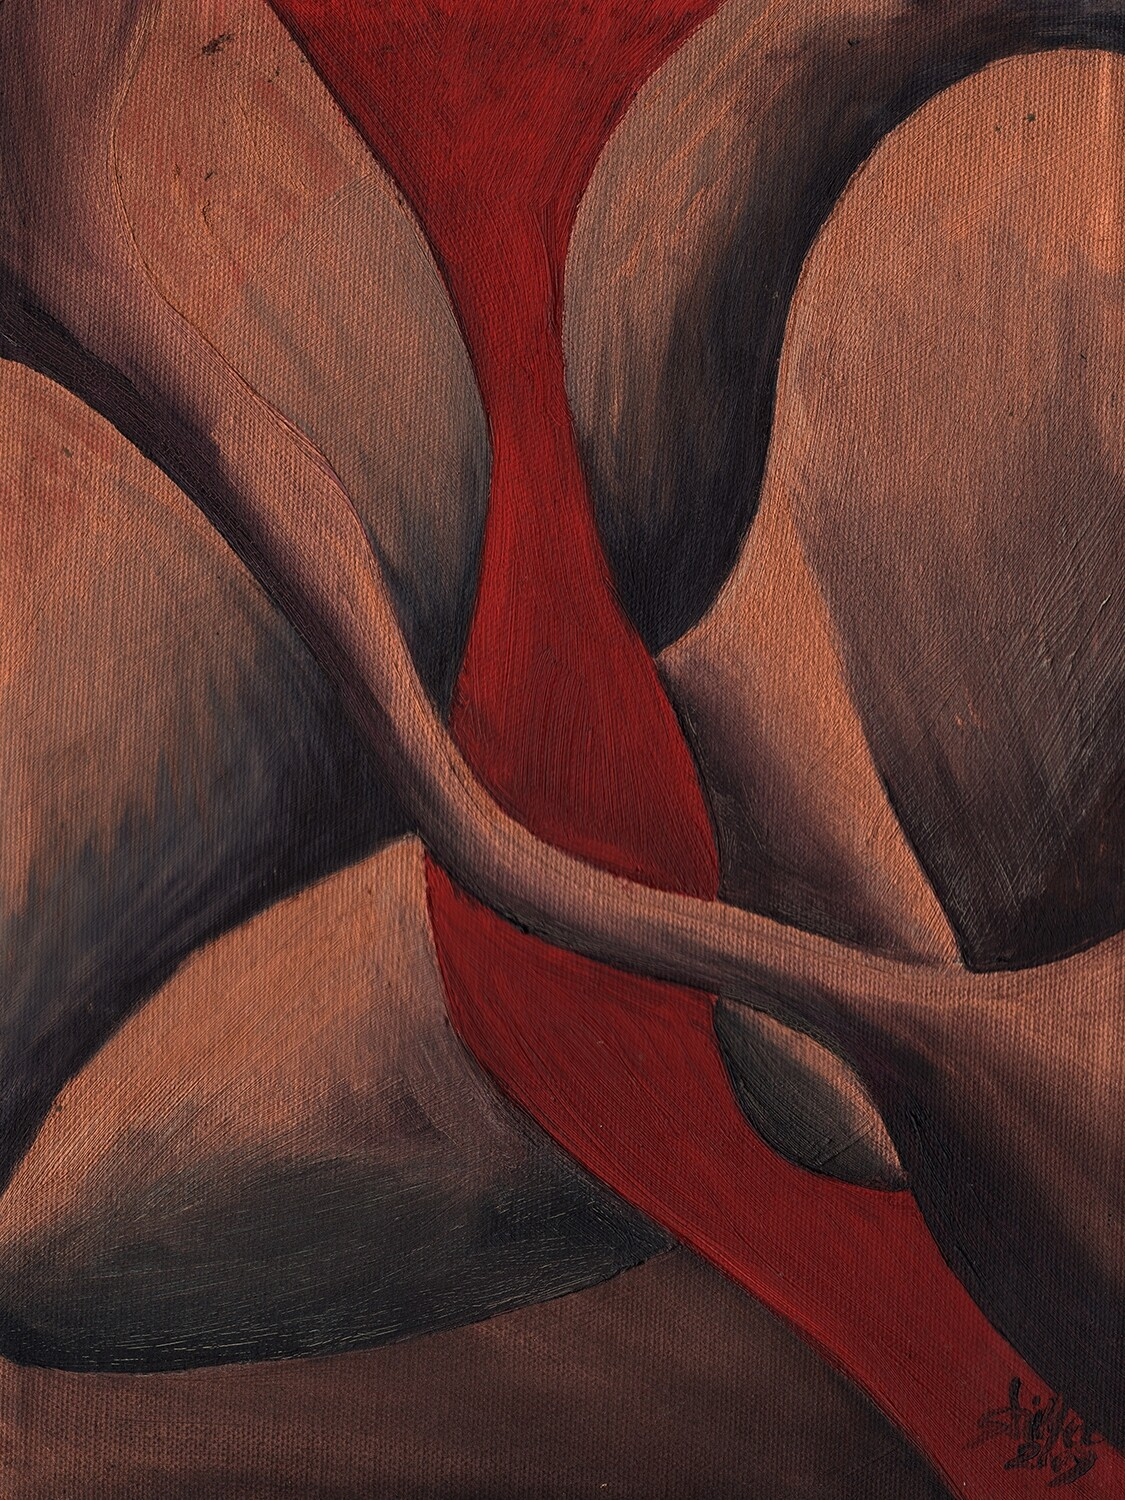 "Red Wave #2, Original Oil Painting, 9""x12"", Abstract, Red, Copper, Black"